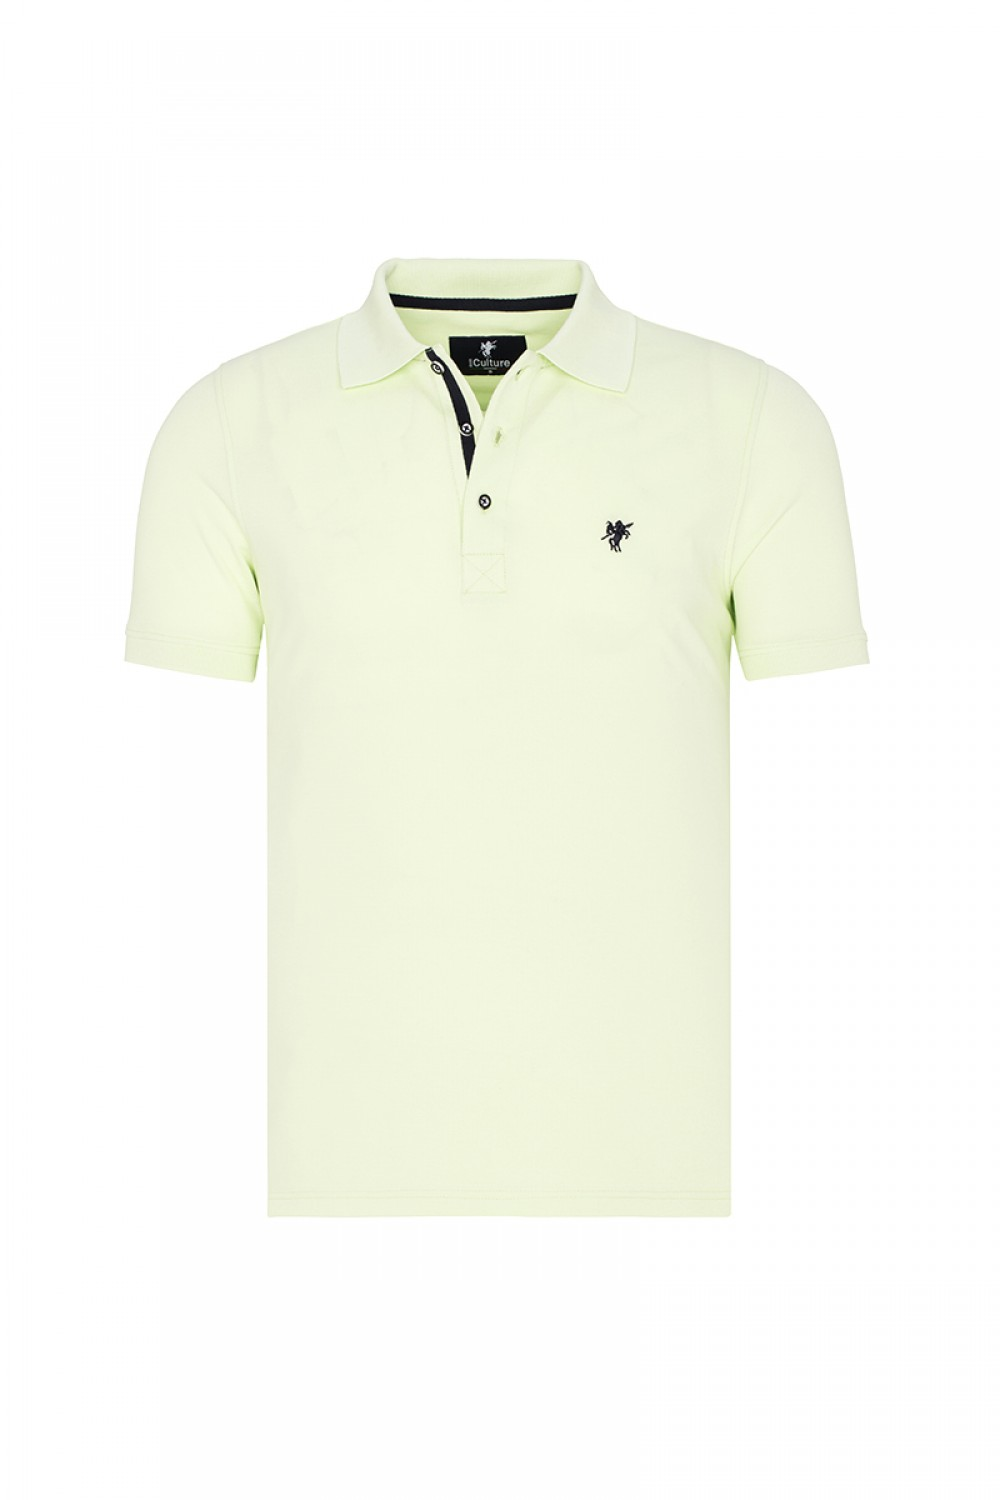 Men's Poloshirt Knitted Pistachio Cotton